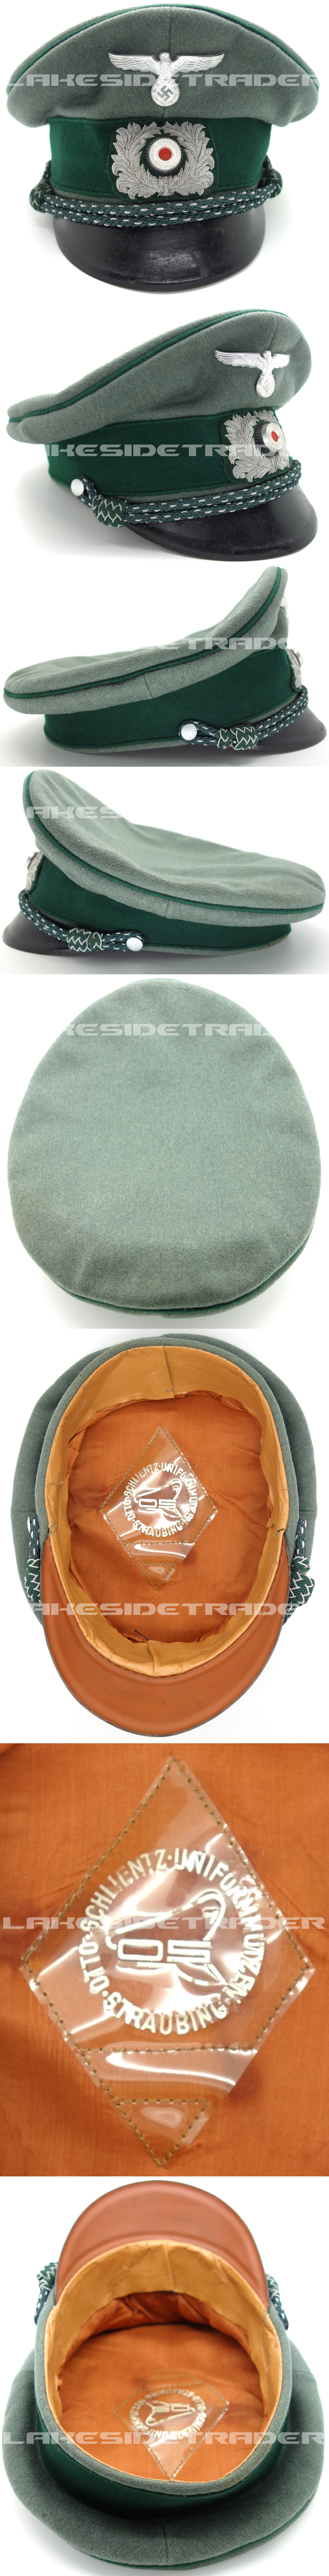 Customs Officers Visor Cap by Otto Schlientz